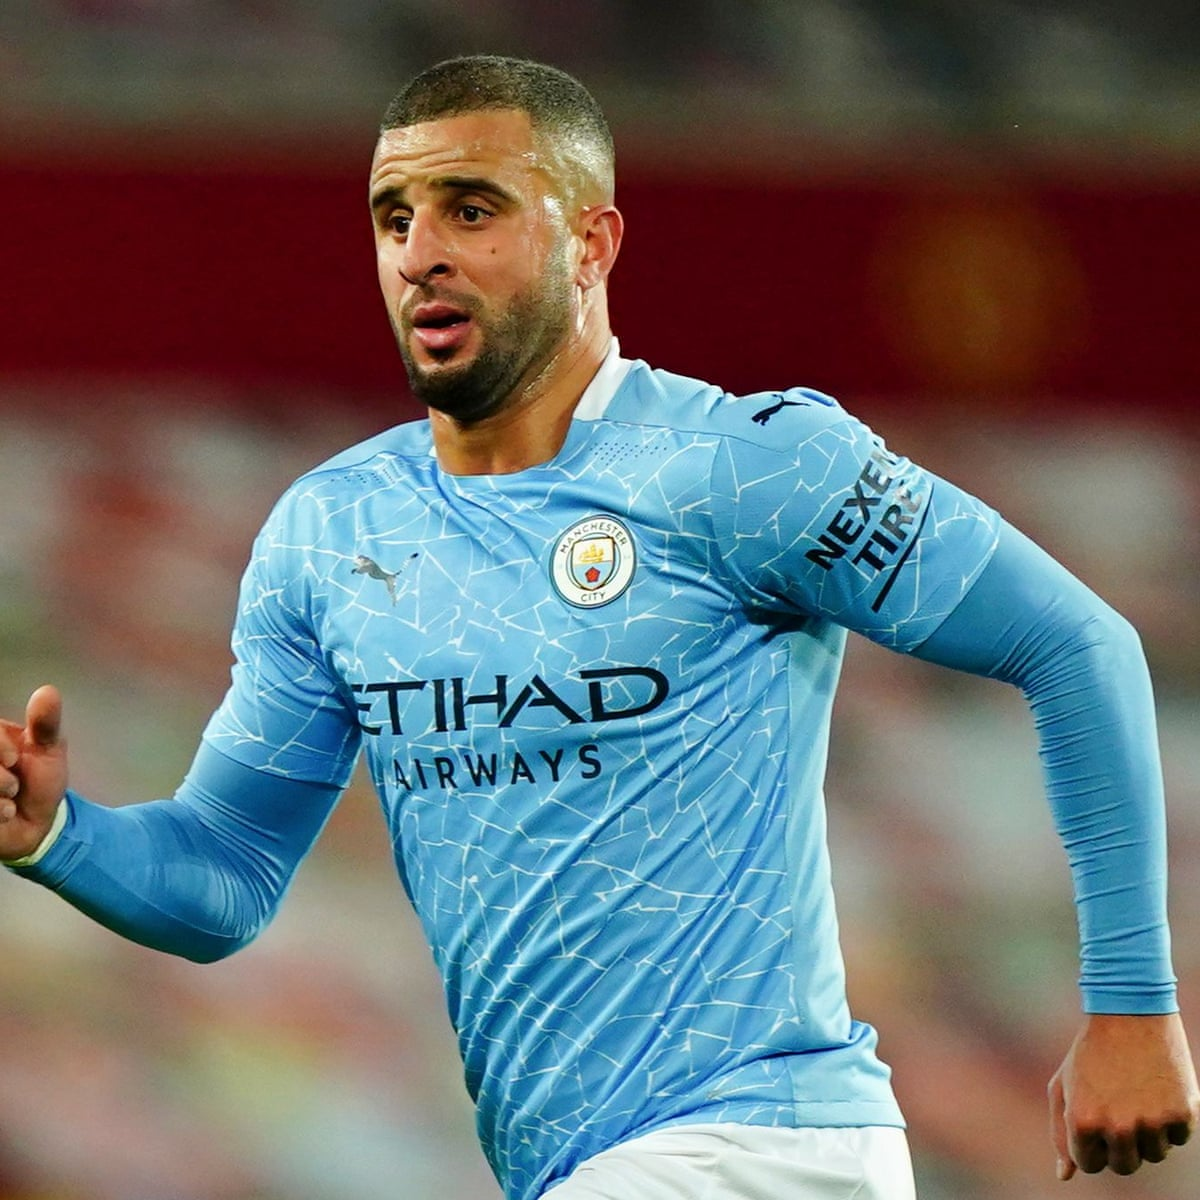 Manchester City S Gabriel Jesus And Kyle Walker Test Positive For Covid 19 Manchester City The Guardian